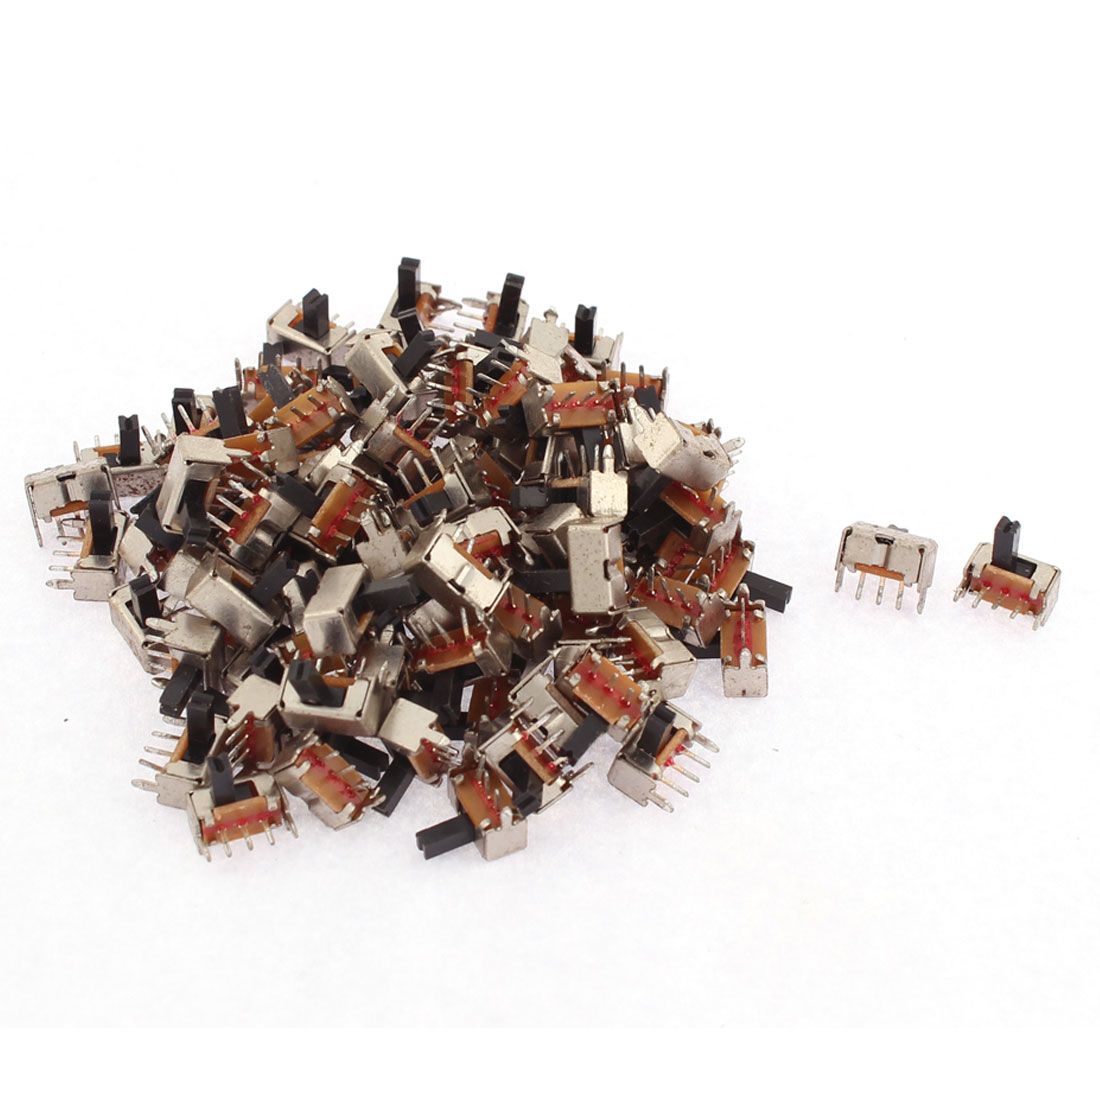 100pcs SPDT On/Off 3 Terminals PCB Panel Vertical Slide Switch DIY Projects